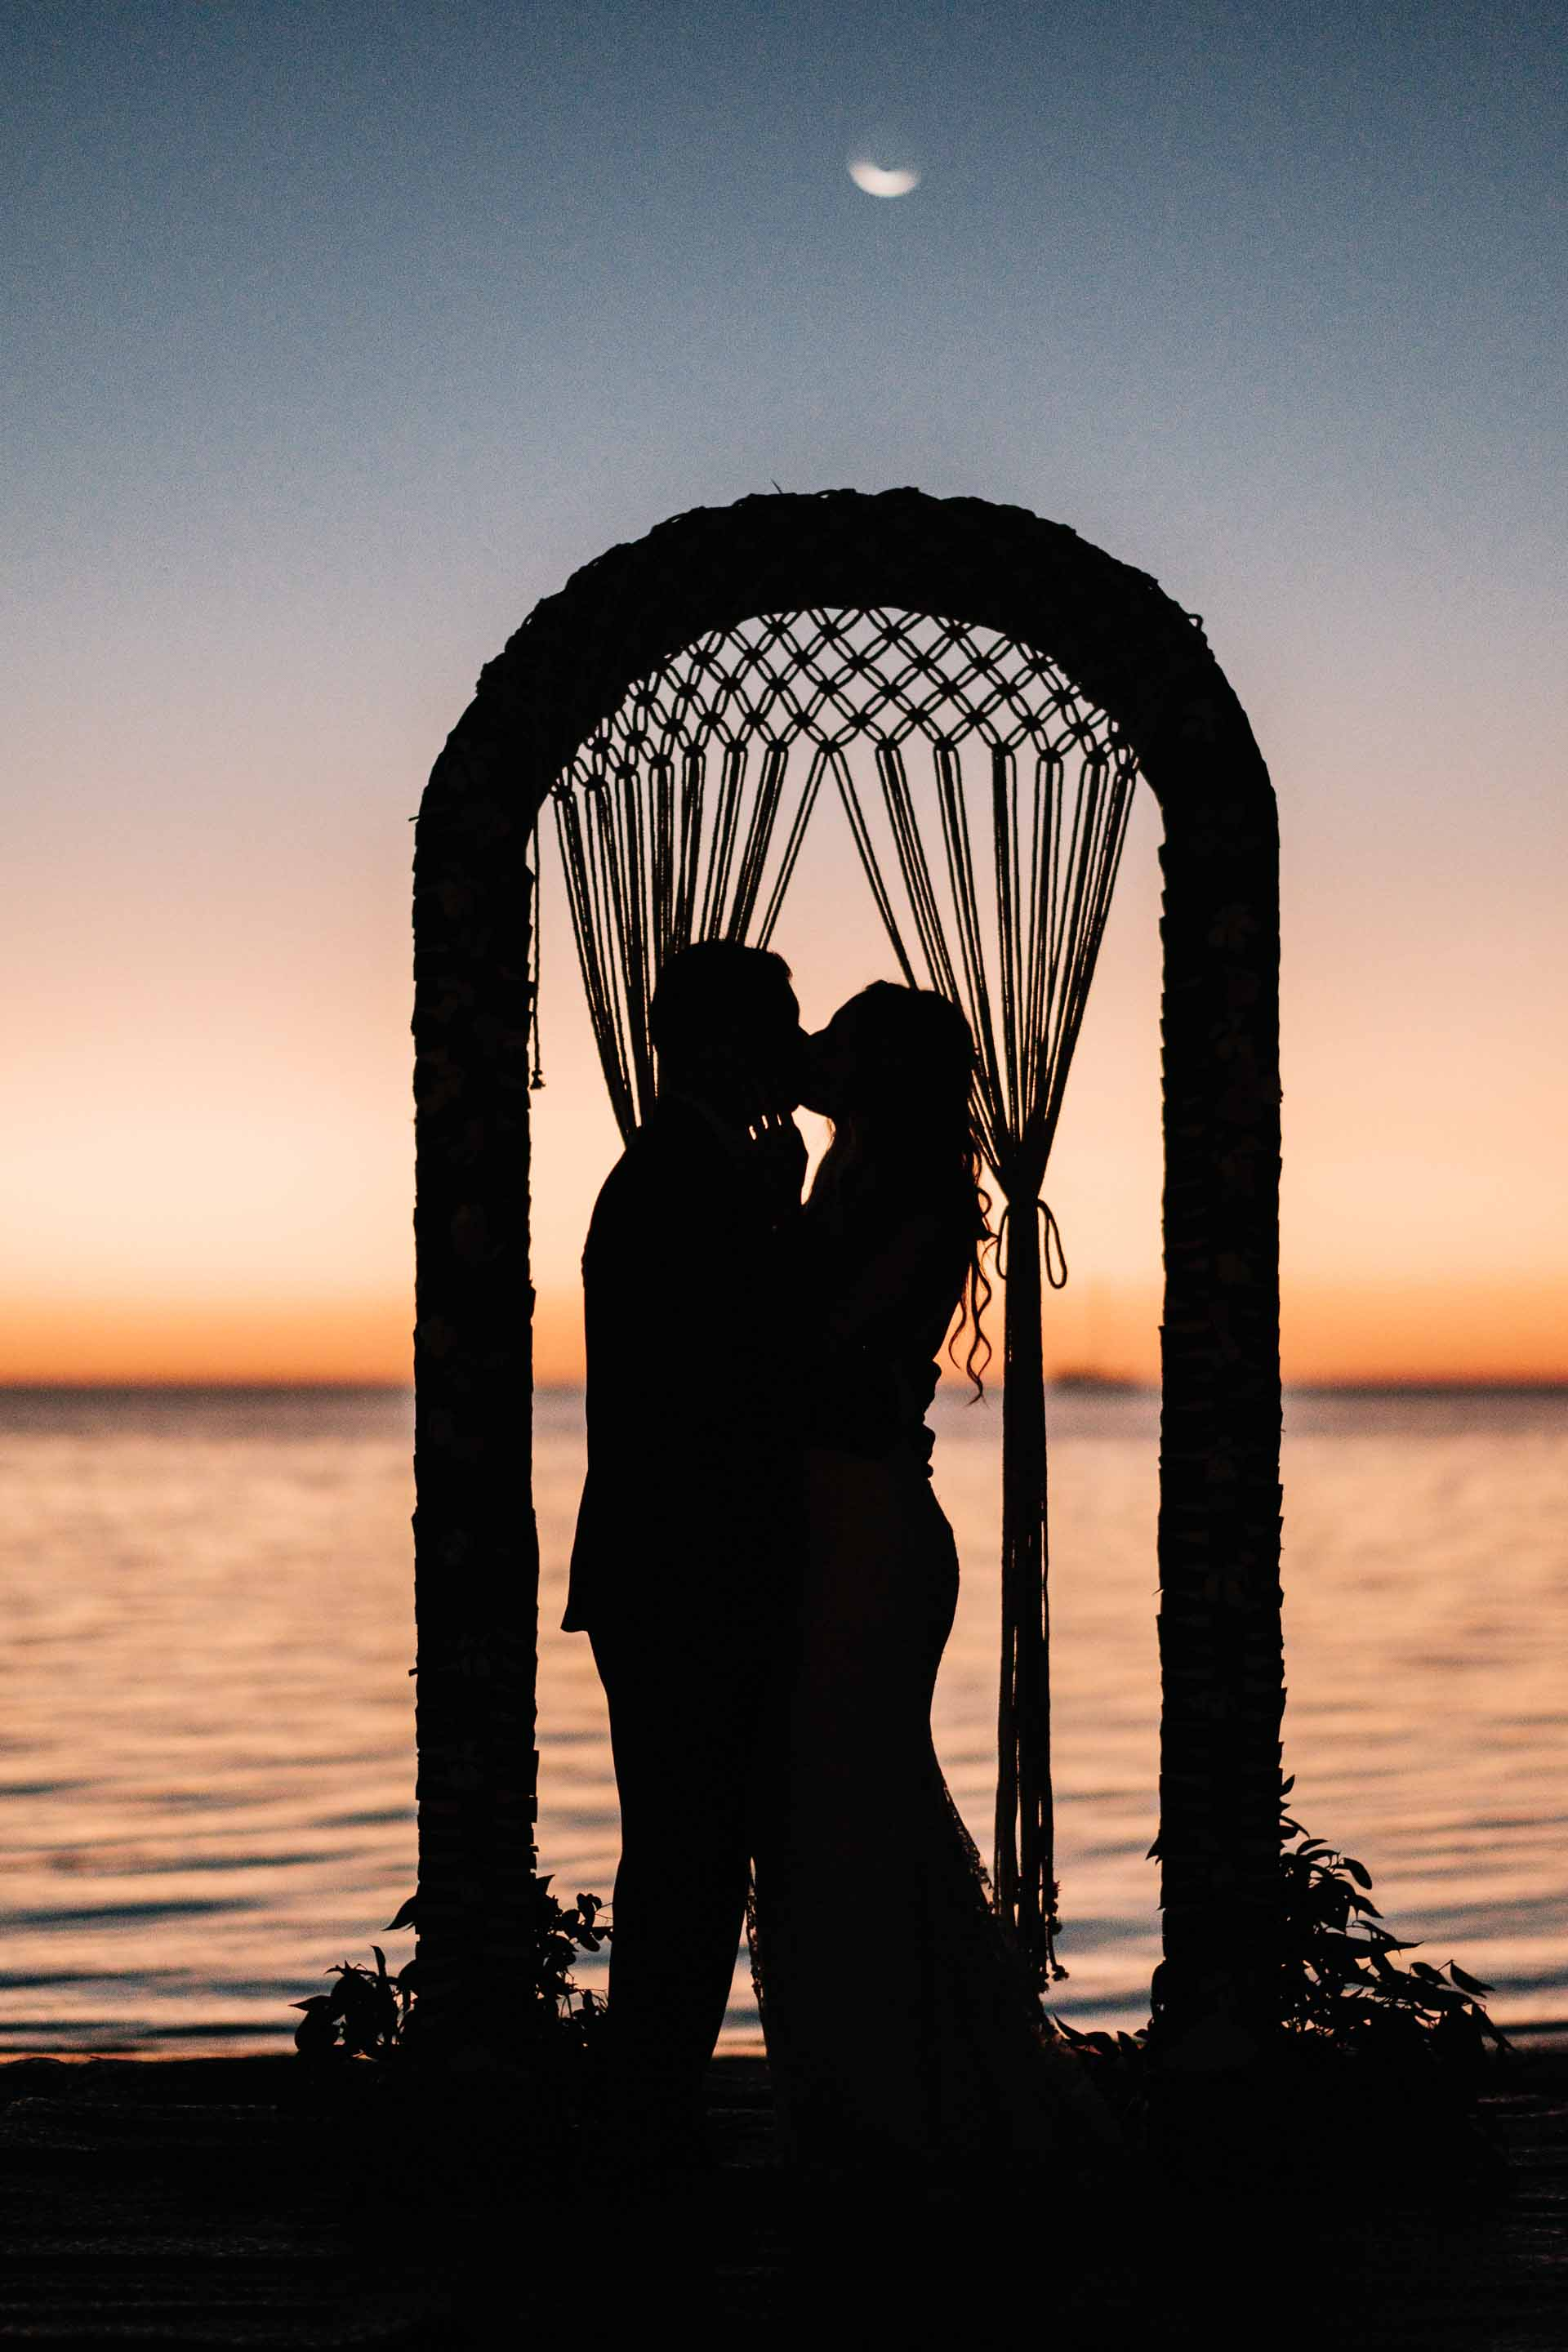 the bride & groom share a kiss silhouetted against the calm warm seas and their macrame wedding arch just after the sun has set with the moon above them